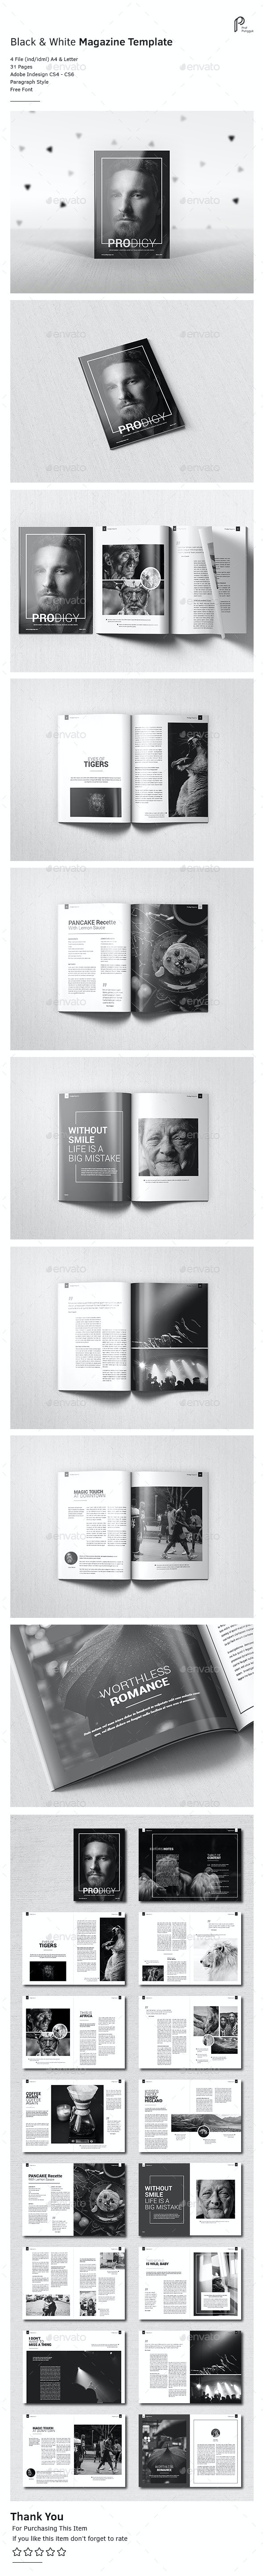 Black & White Magazine Vol.3 - Magazines Print Templates